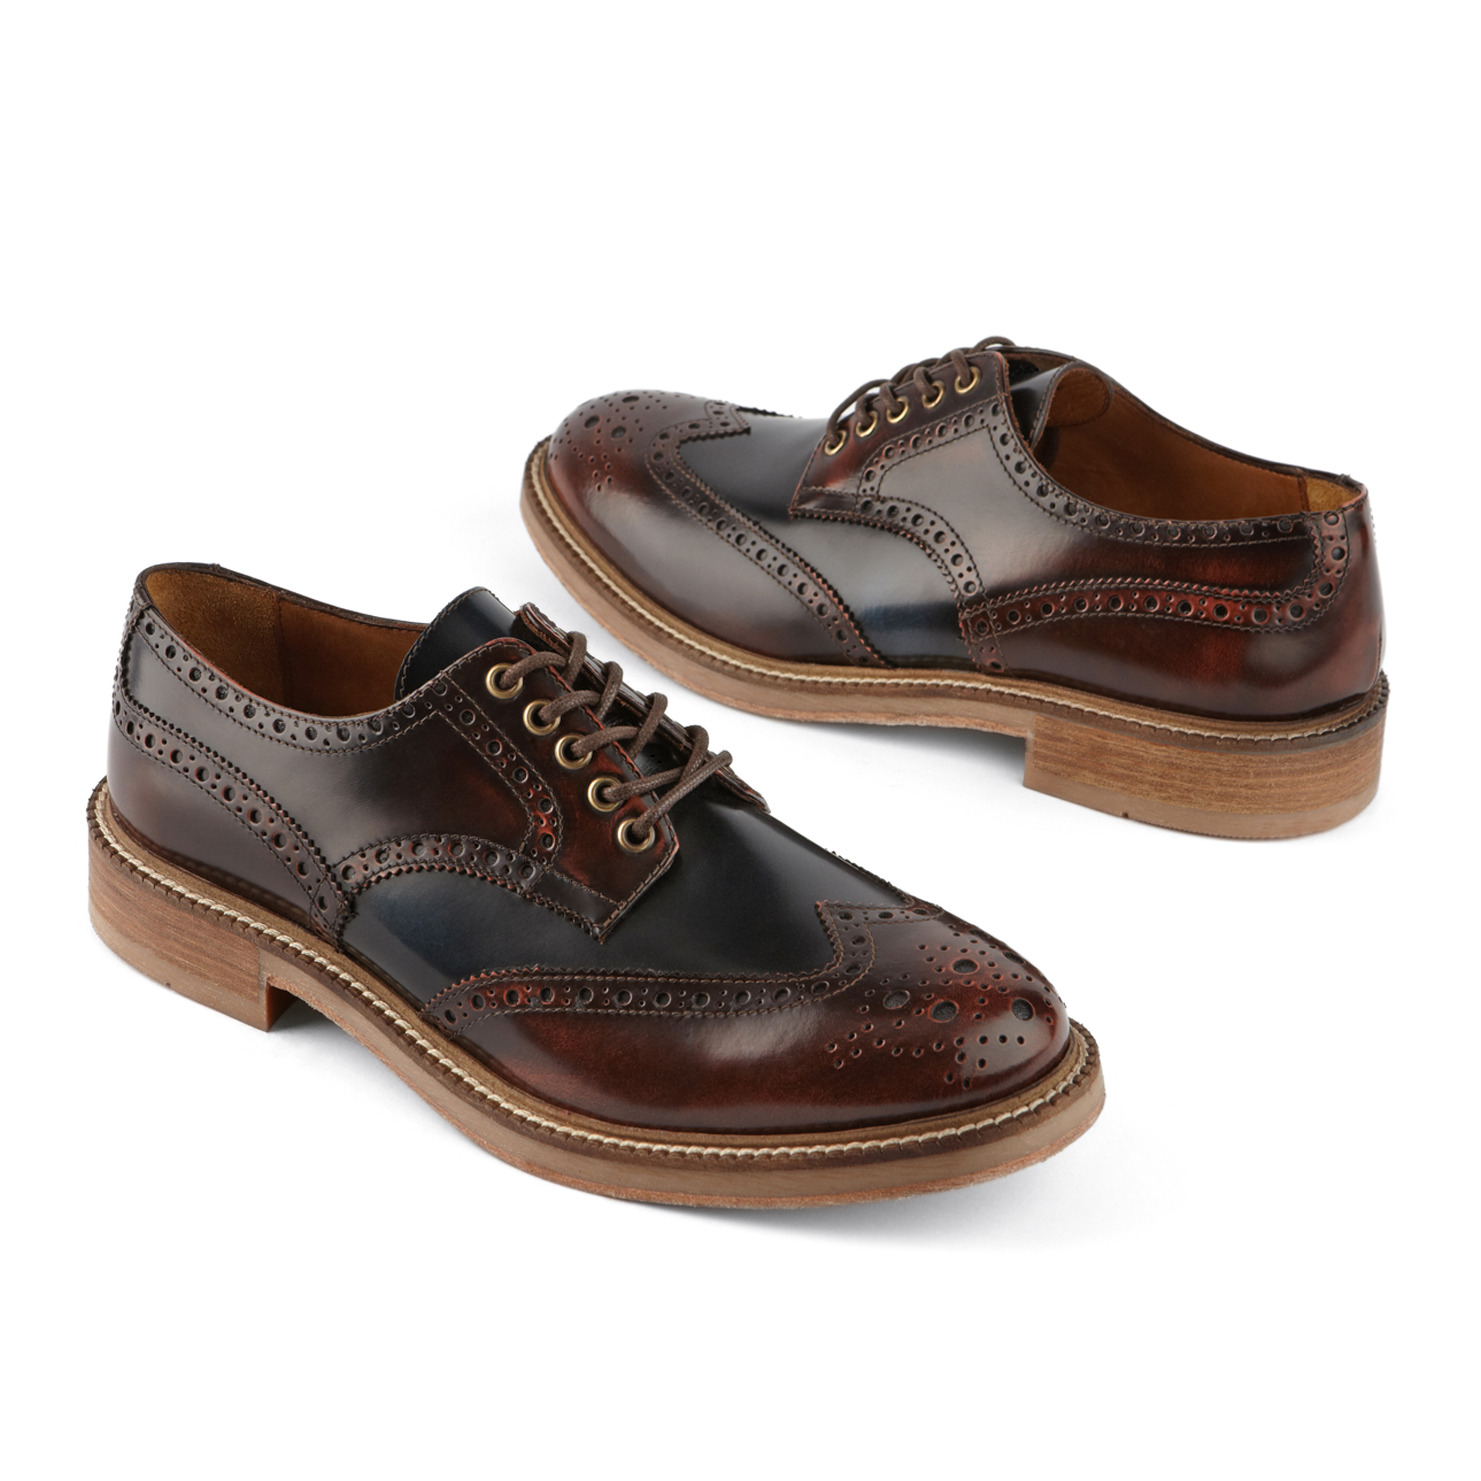 Option one: Dark brown and black wingtips (Mentzel)